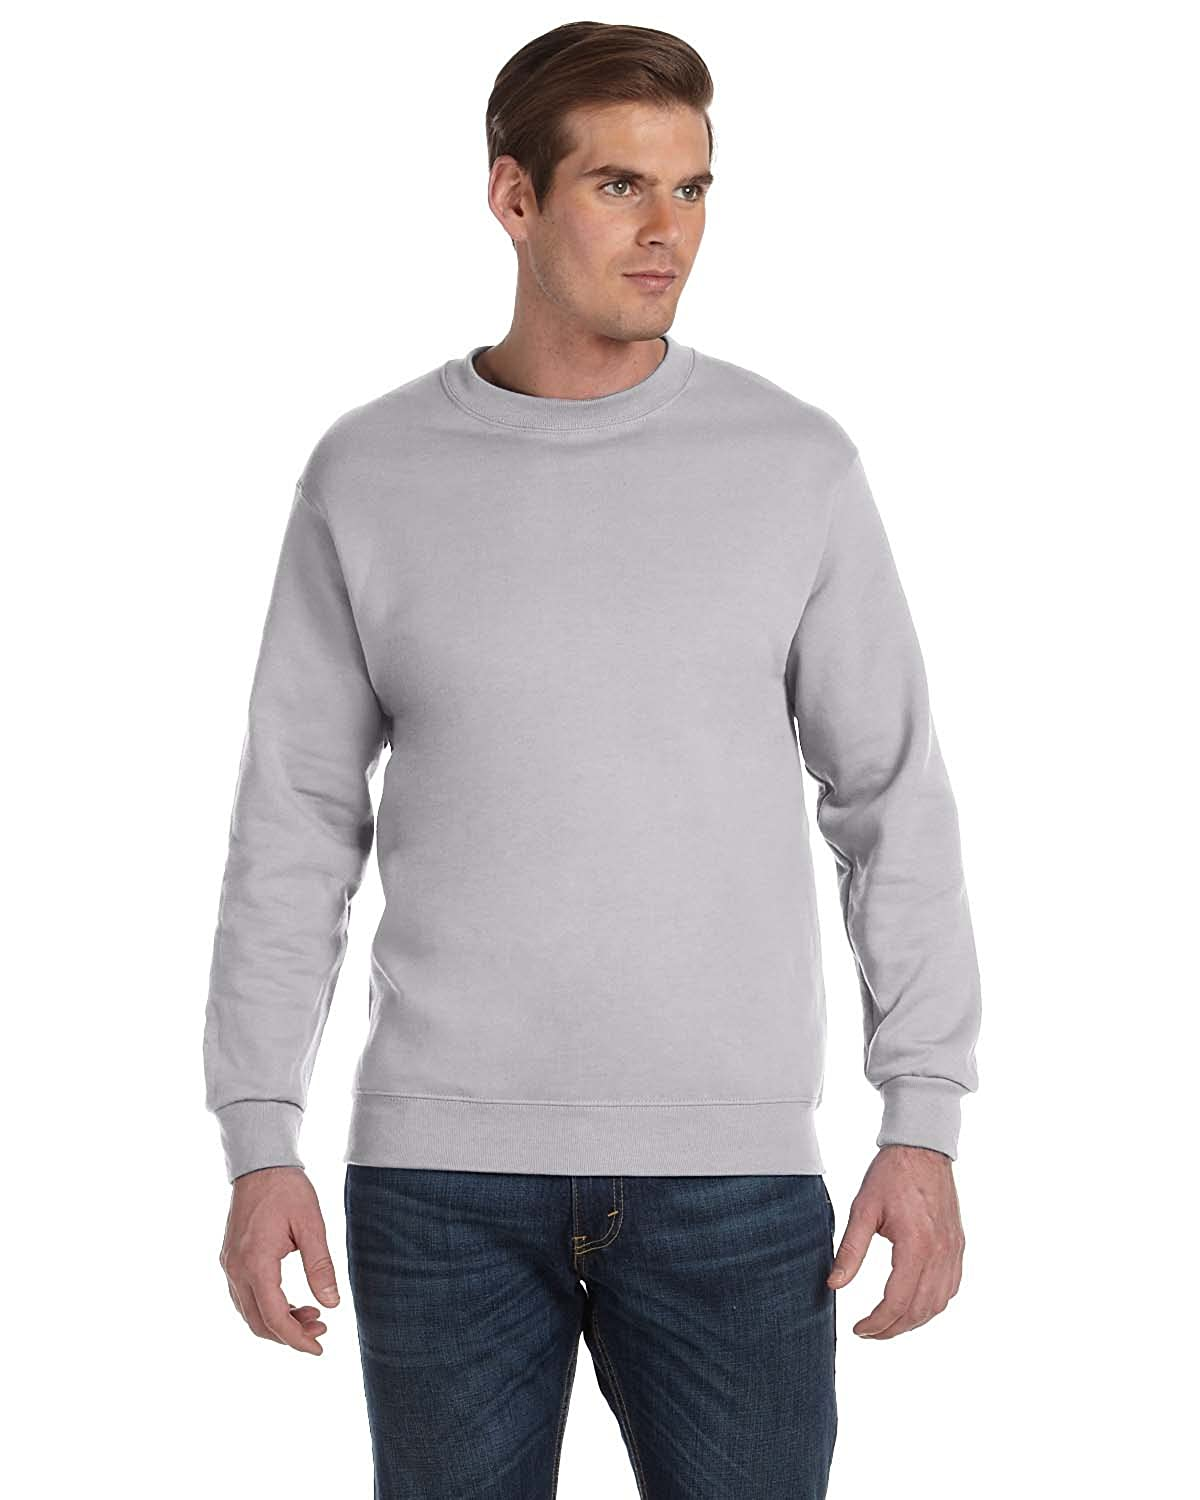 -Sport Grey -L-12PK DryBlend? 50//50 Fleece Crew G120 Gildan Mens 9.3 oz